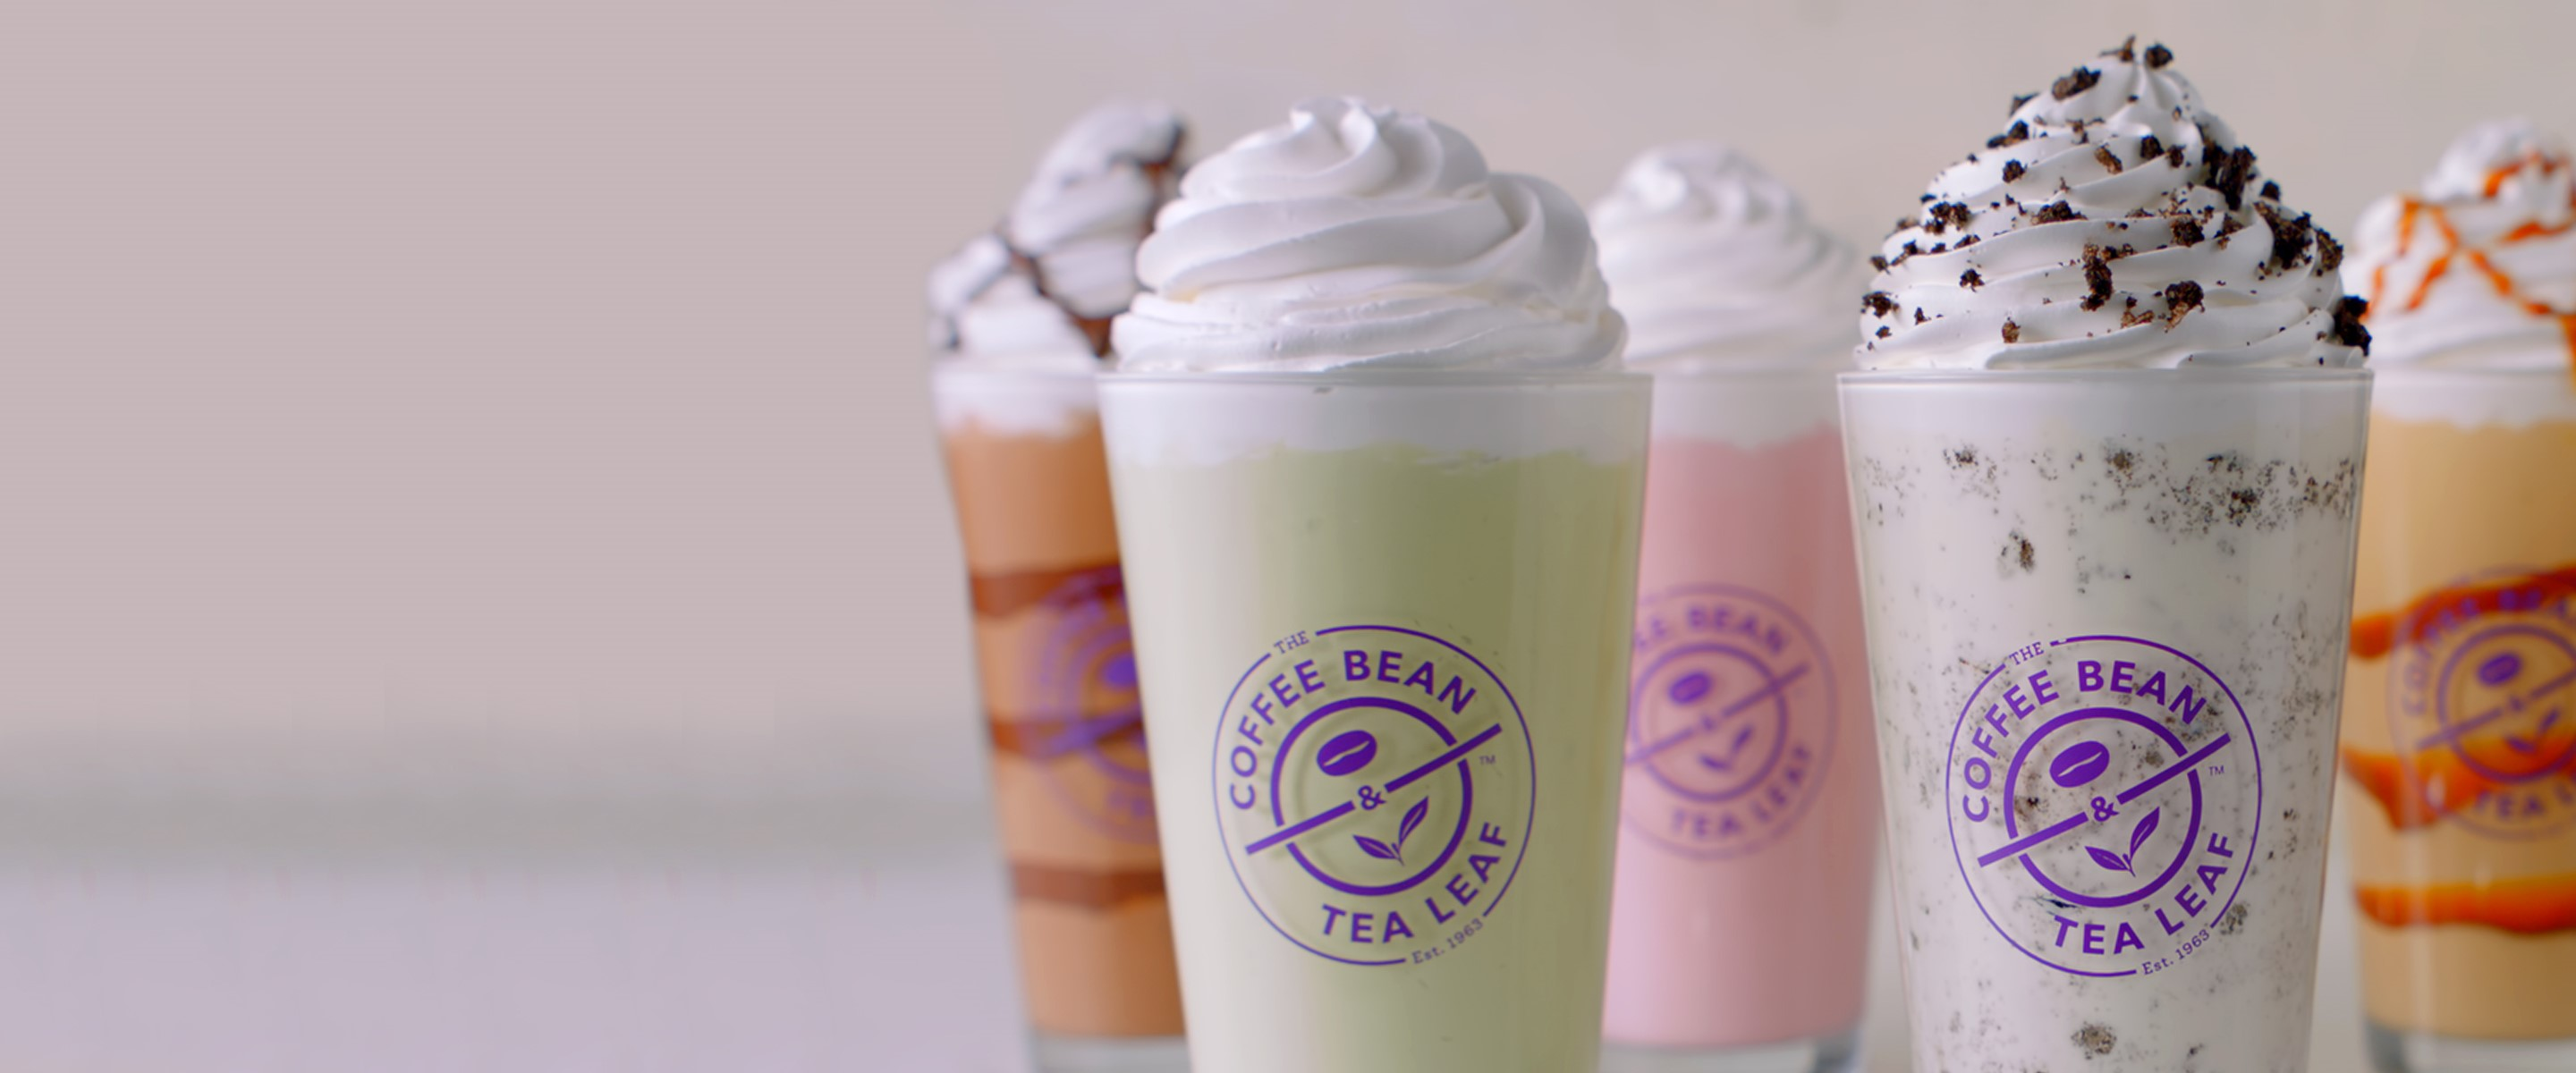 Ice Blended Drinks